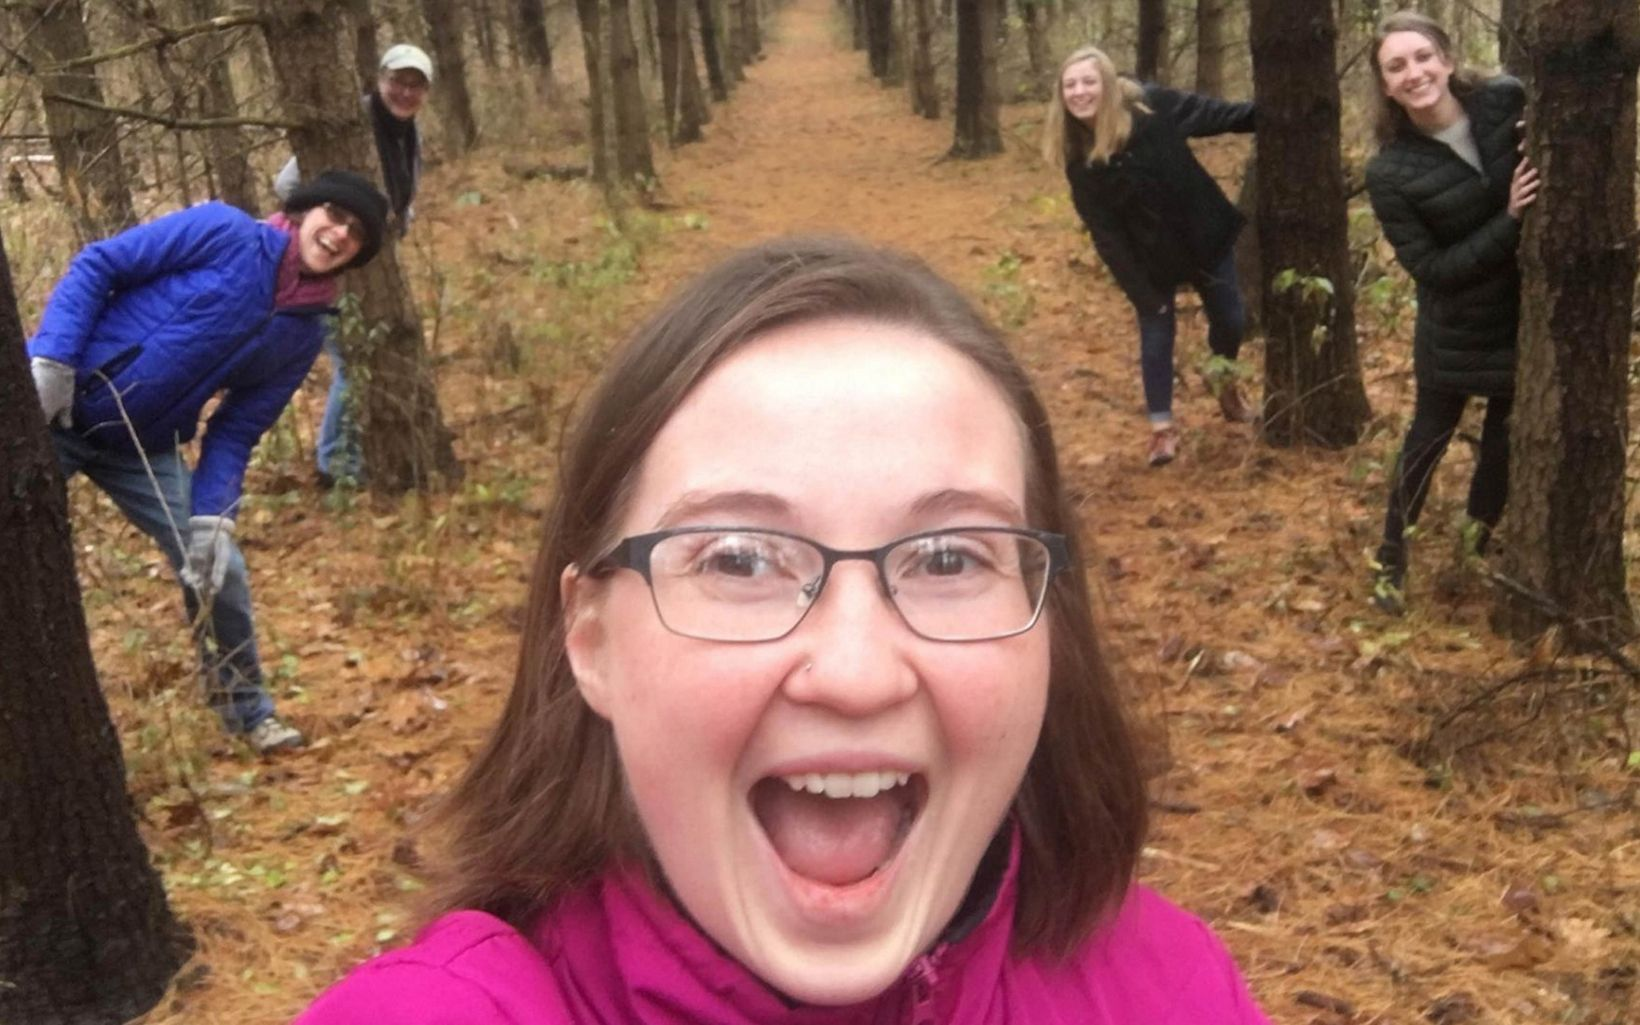 Group of women hiding behind trees on a nature trail.